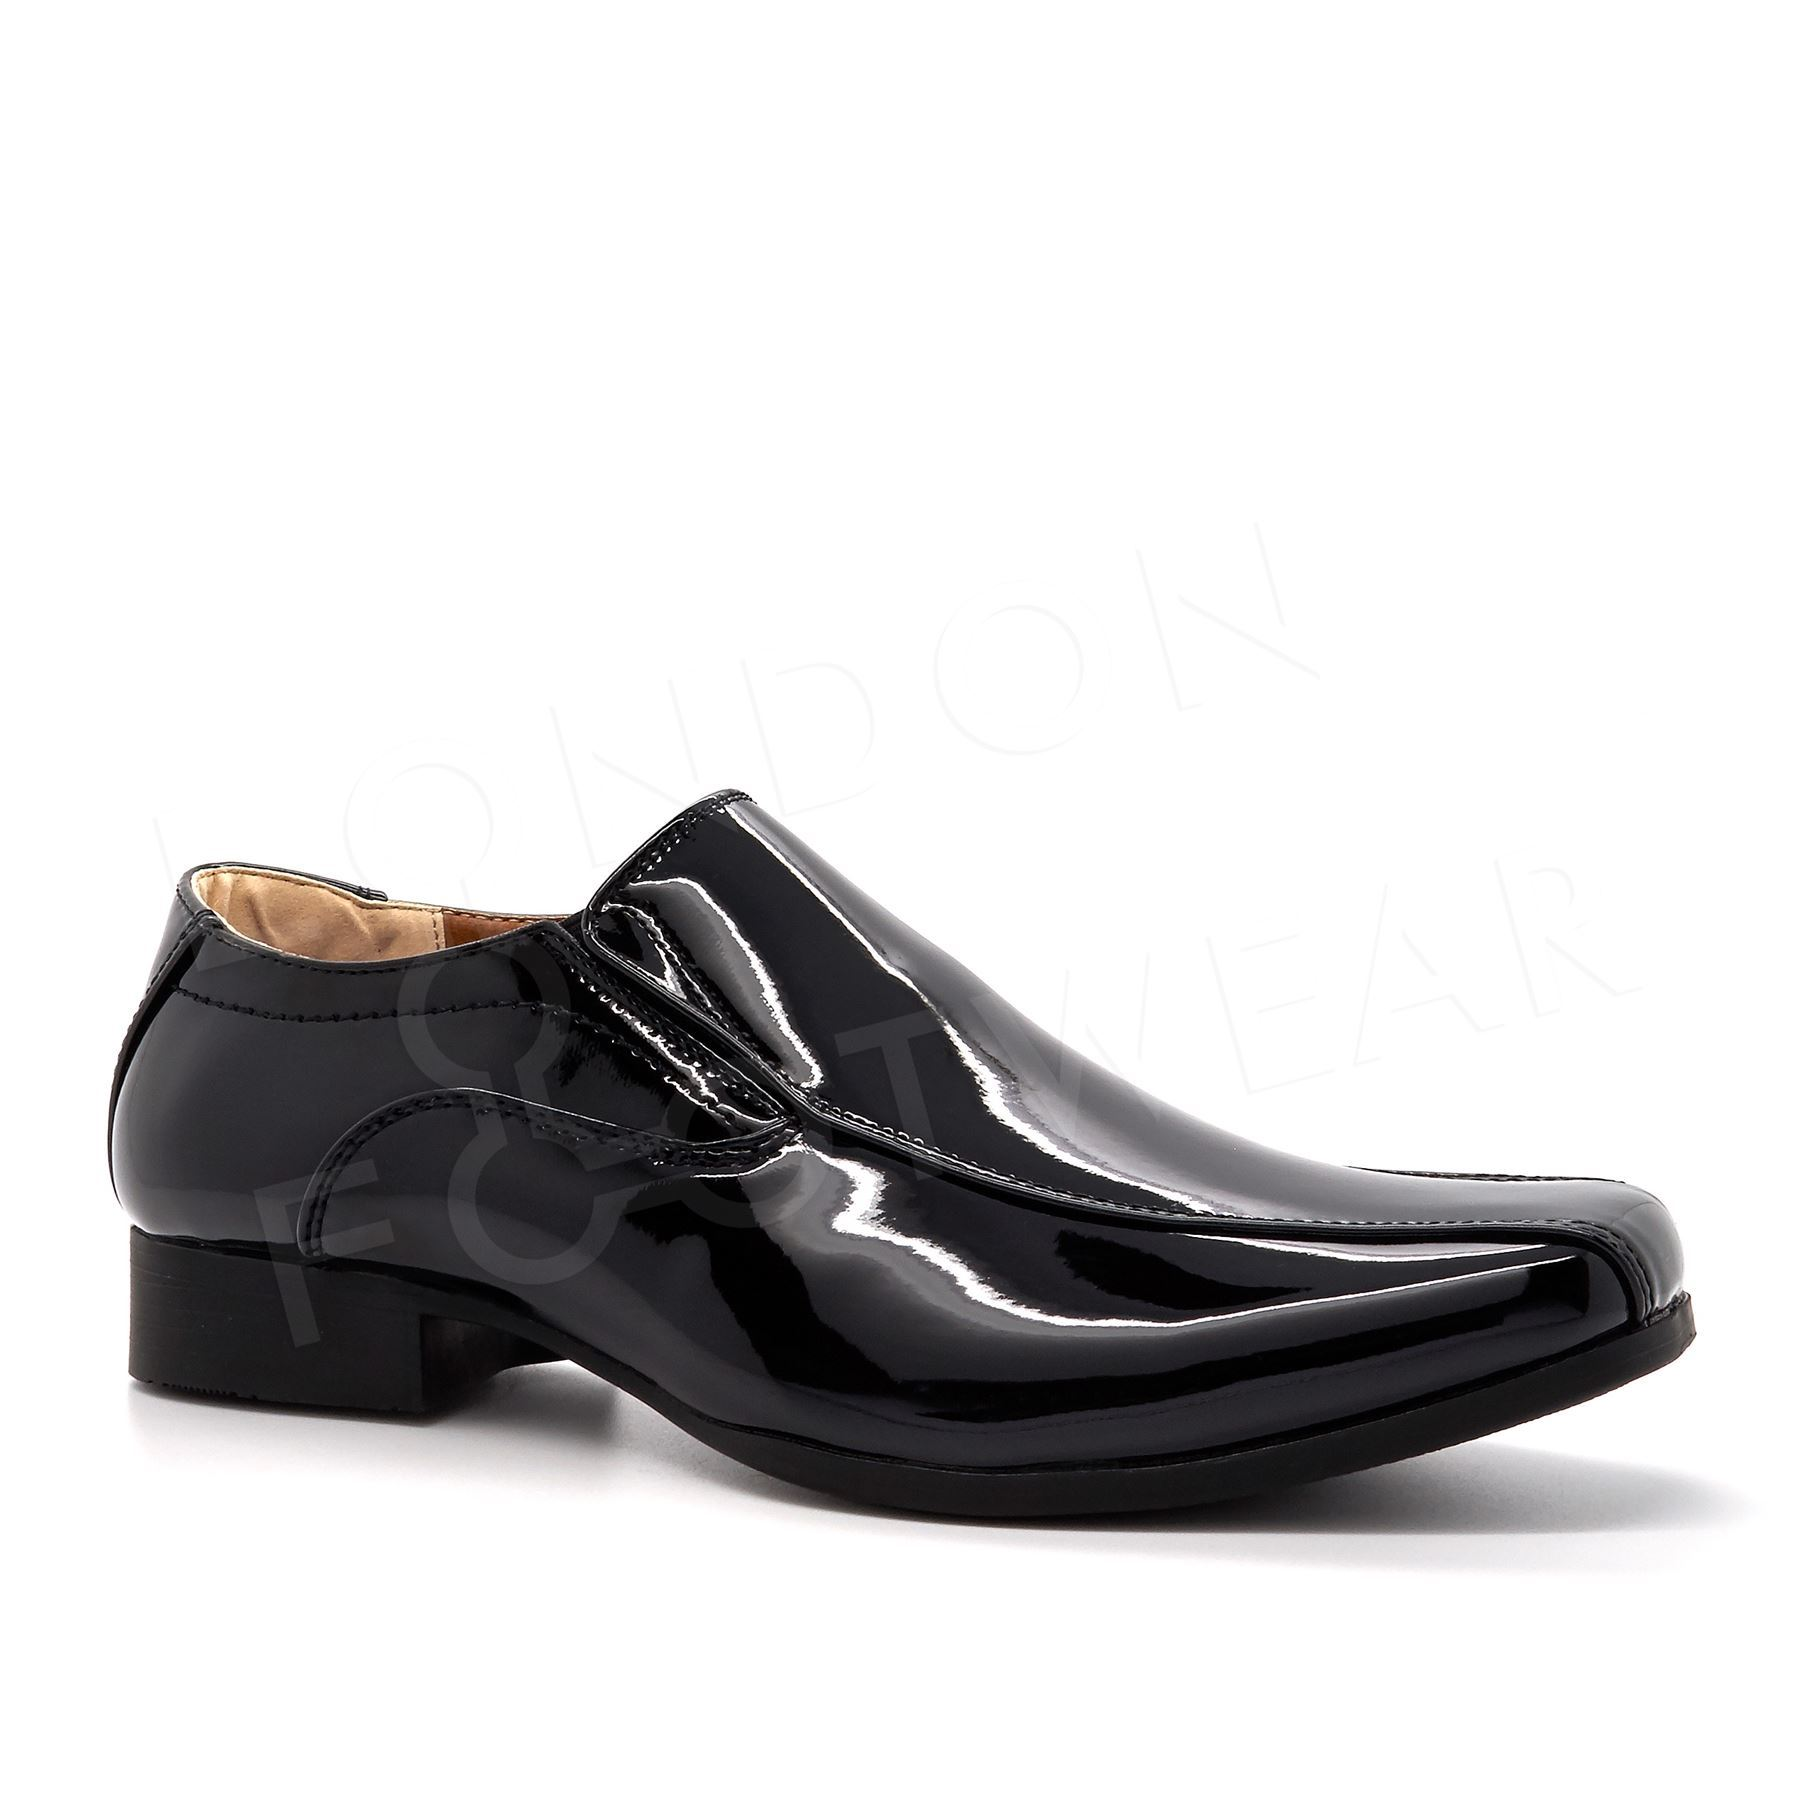 boys new patent leather slip on formal shoes